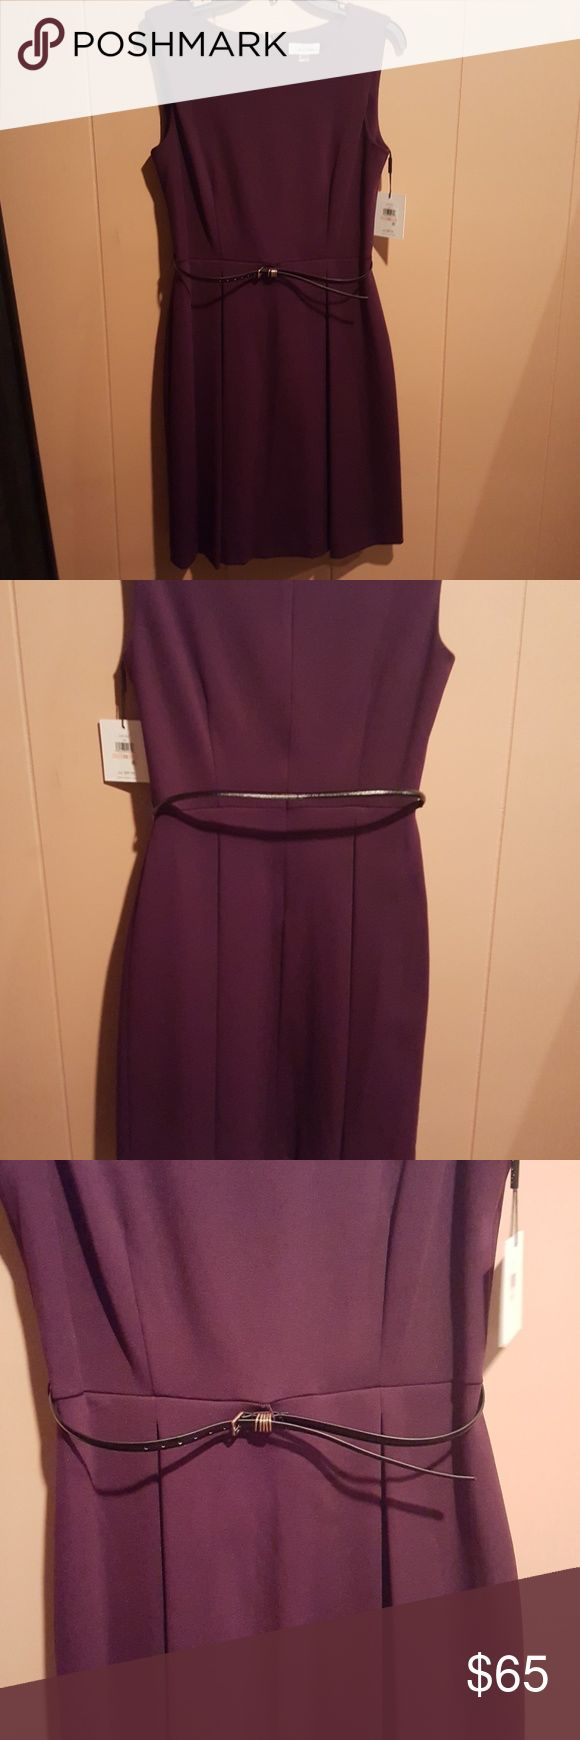 Calvin Klein NWT dress New Calvin Klein dress with pleated skirt. It is aubergine in color. Very beautiful for all occasions. Calvin Klein Dresses Midi